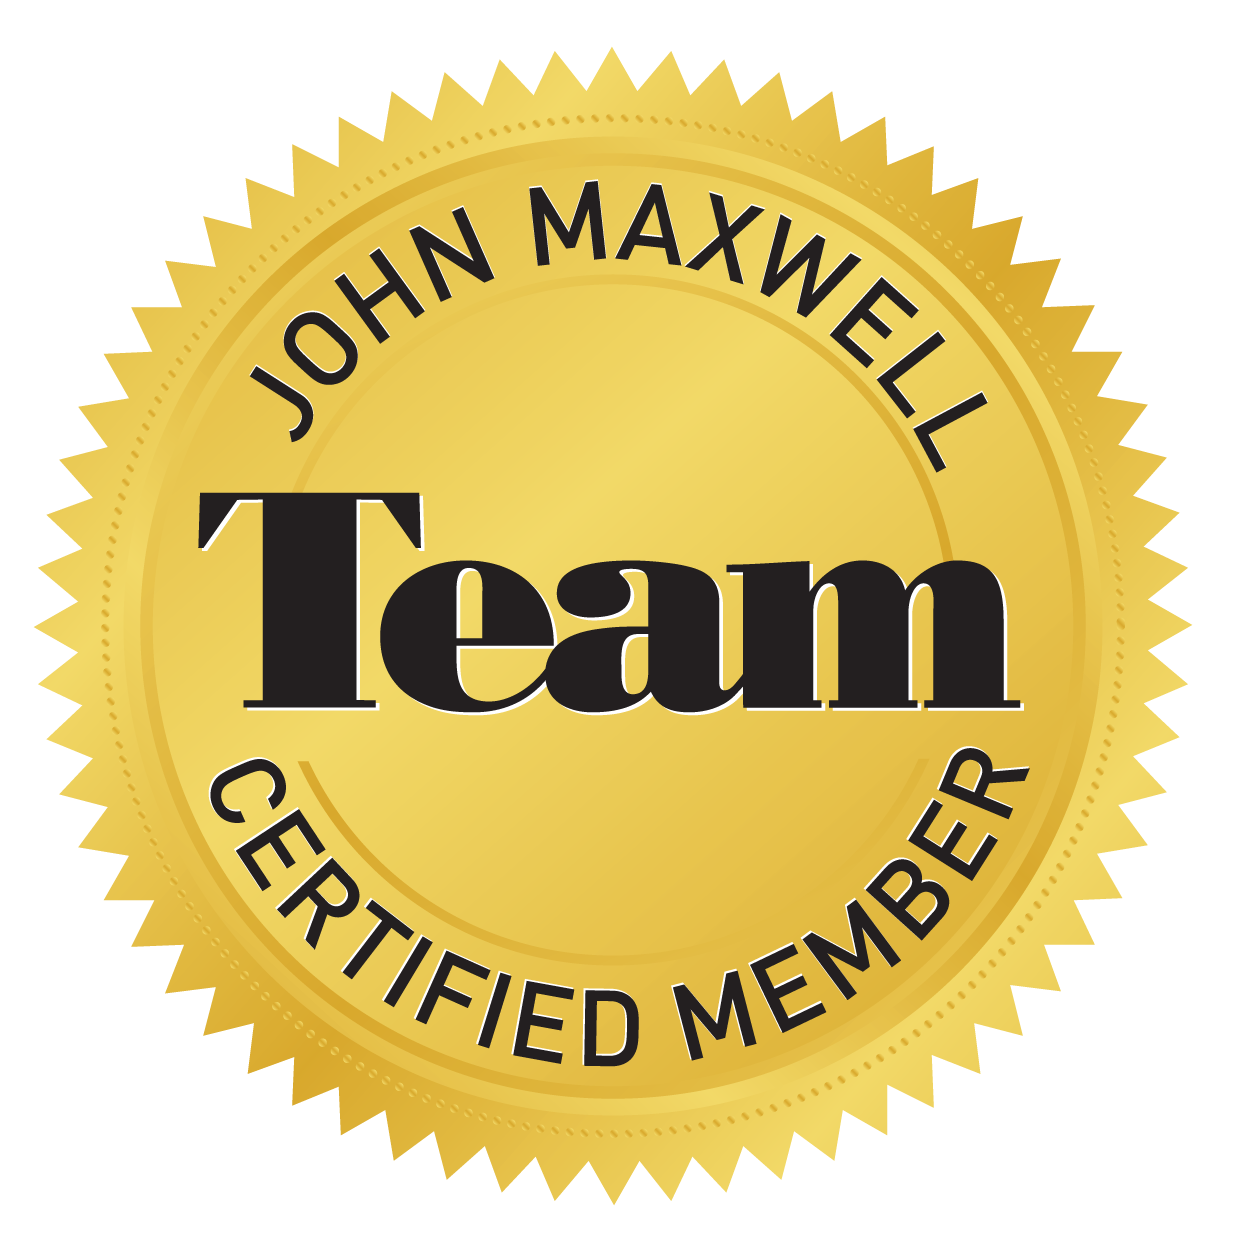 John Maxwell Certified Coach, Teacher and Trainer